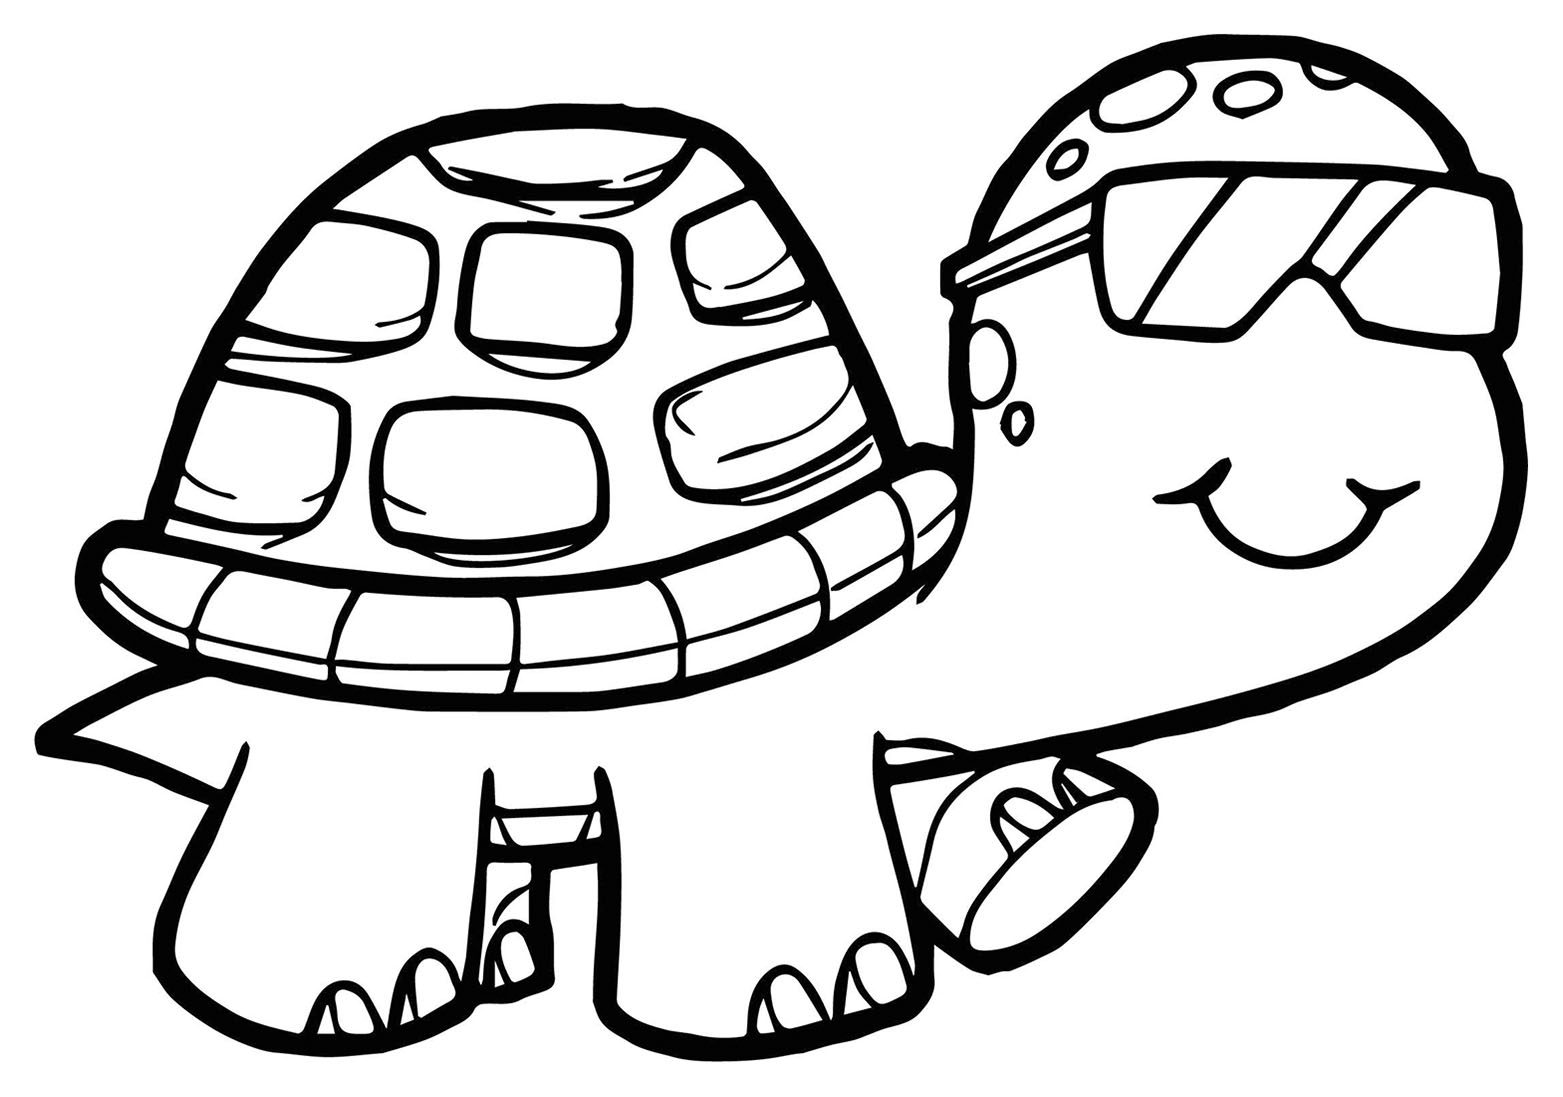 Turtles To Print For Free